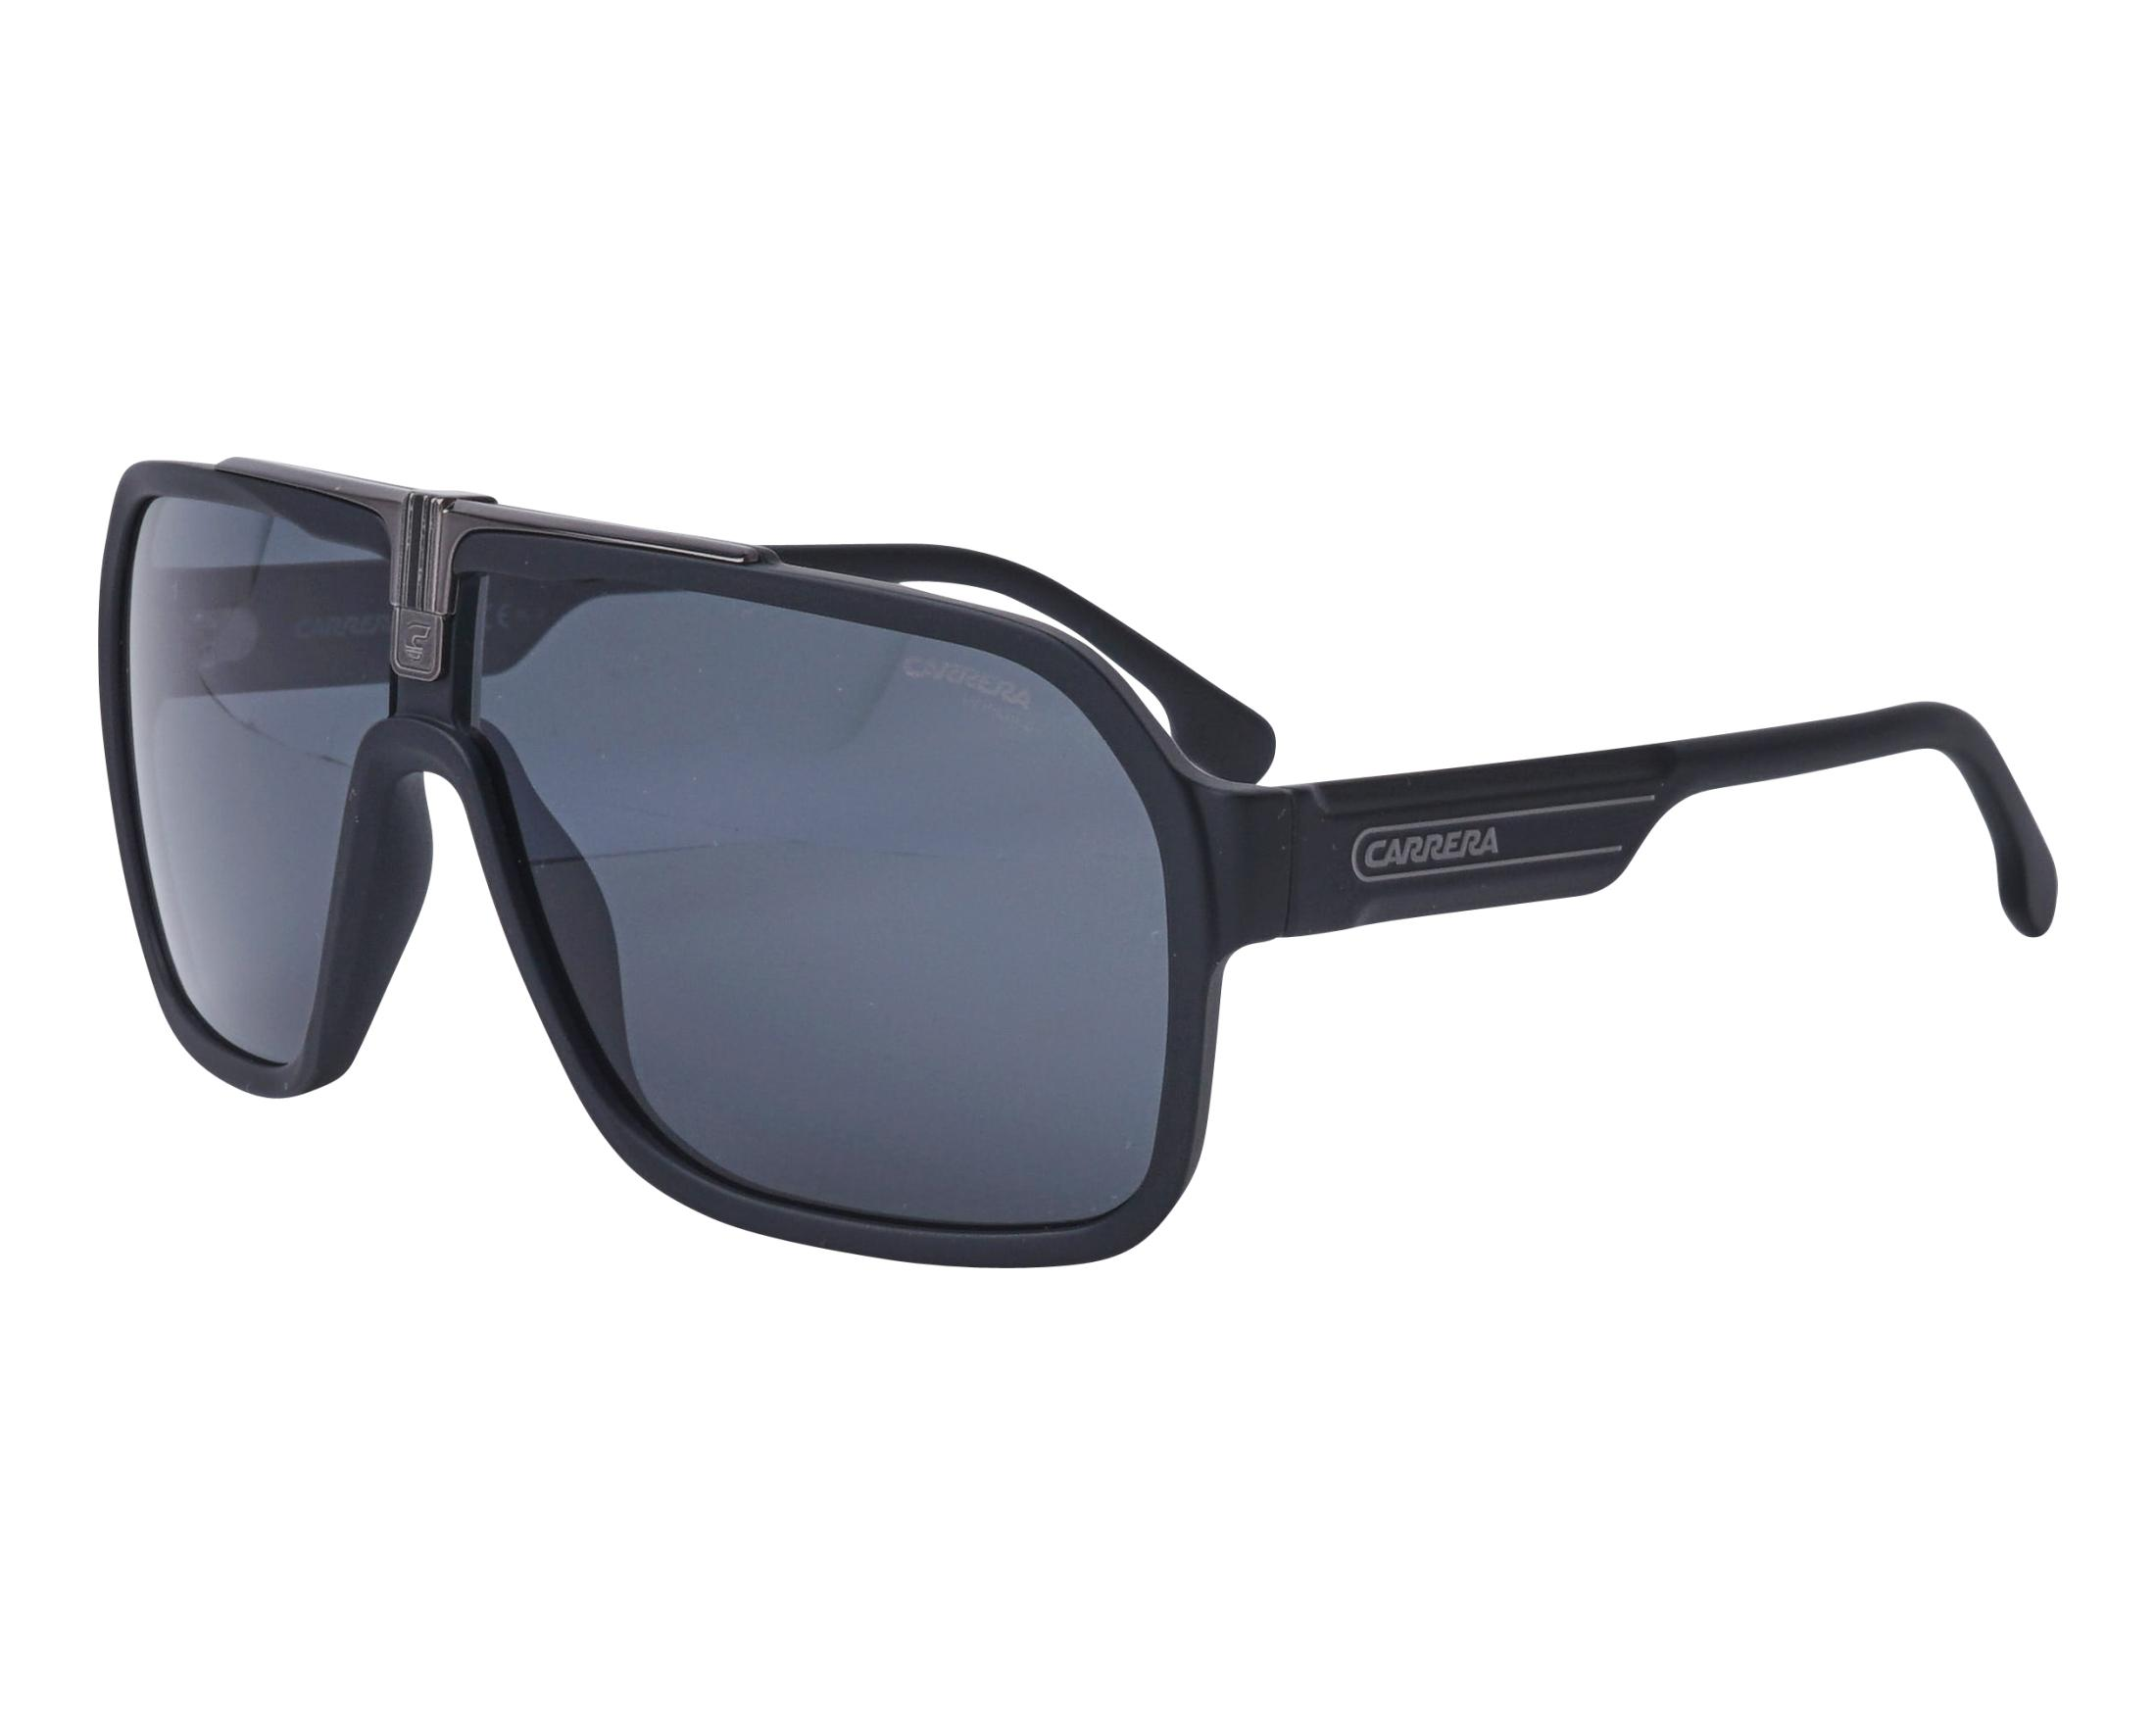 7e5eaeaee Sunglasses Carrera 1014-S 0032K 64-10 Black Gun profile view